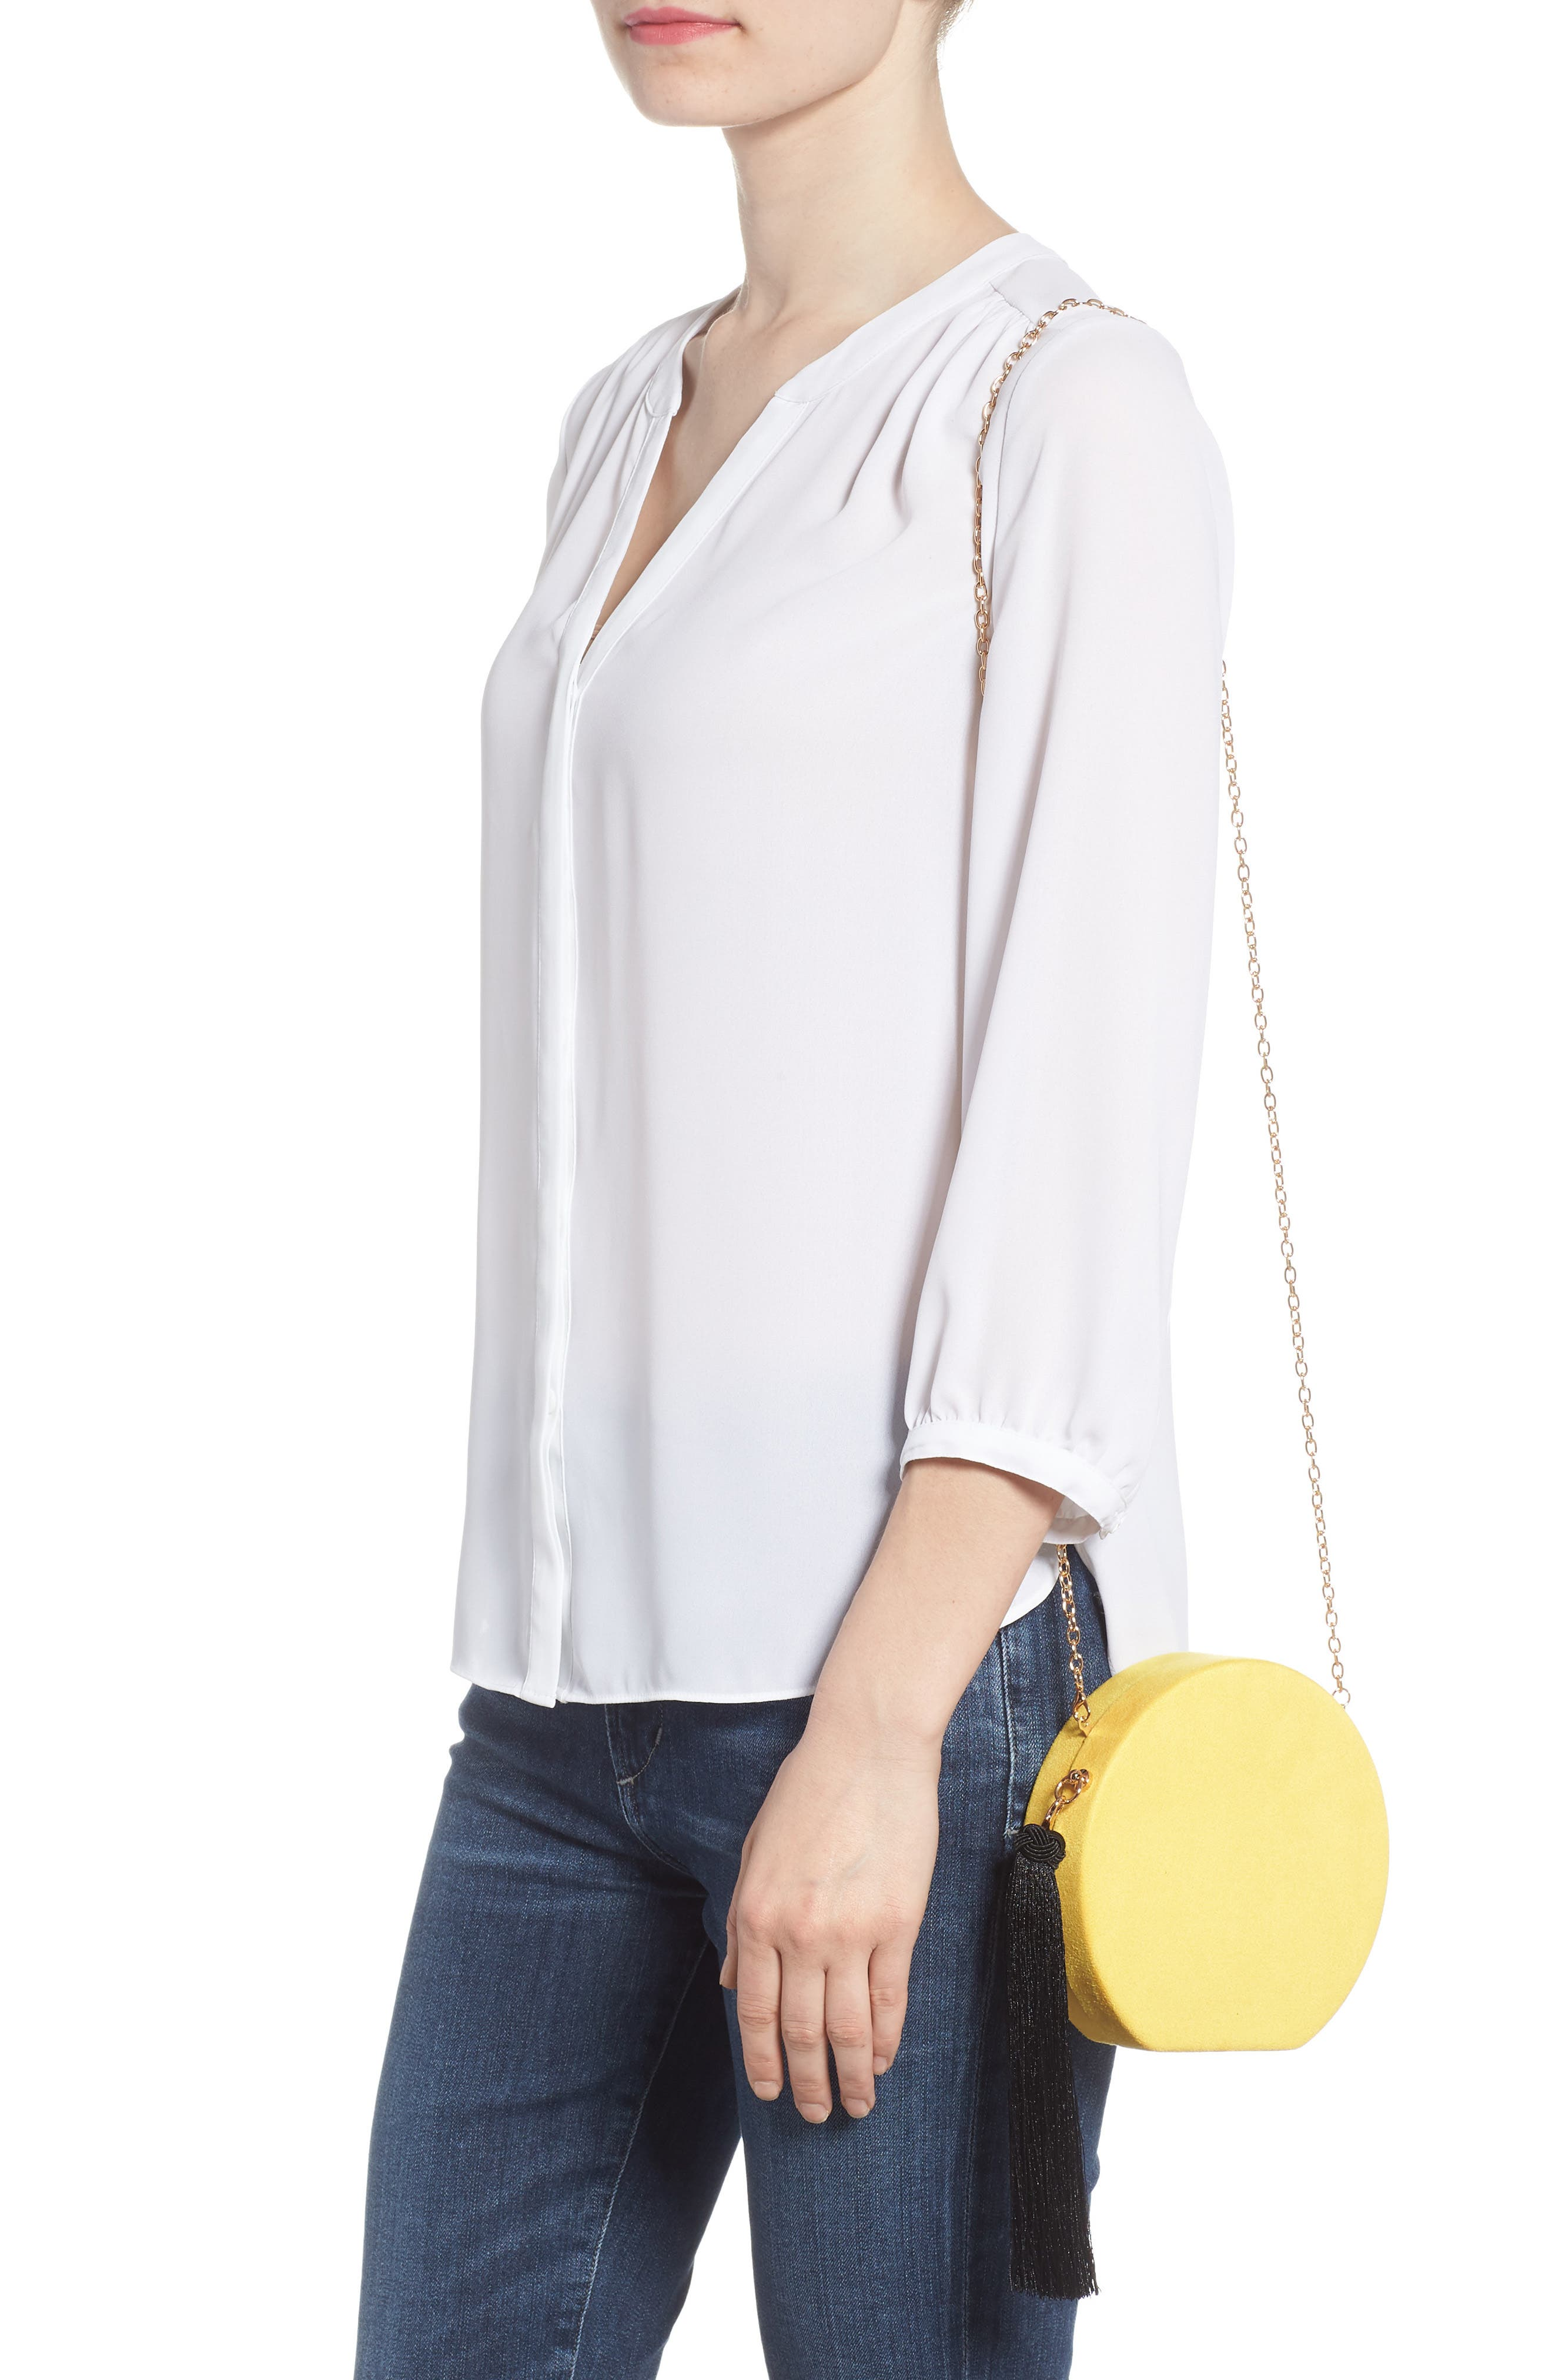 Couture Round Tassel Clutch,                             Alternate thumbnail 2, color,                             Yellow